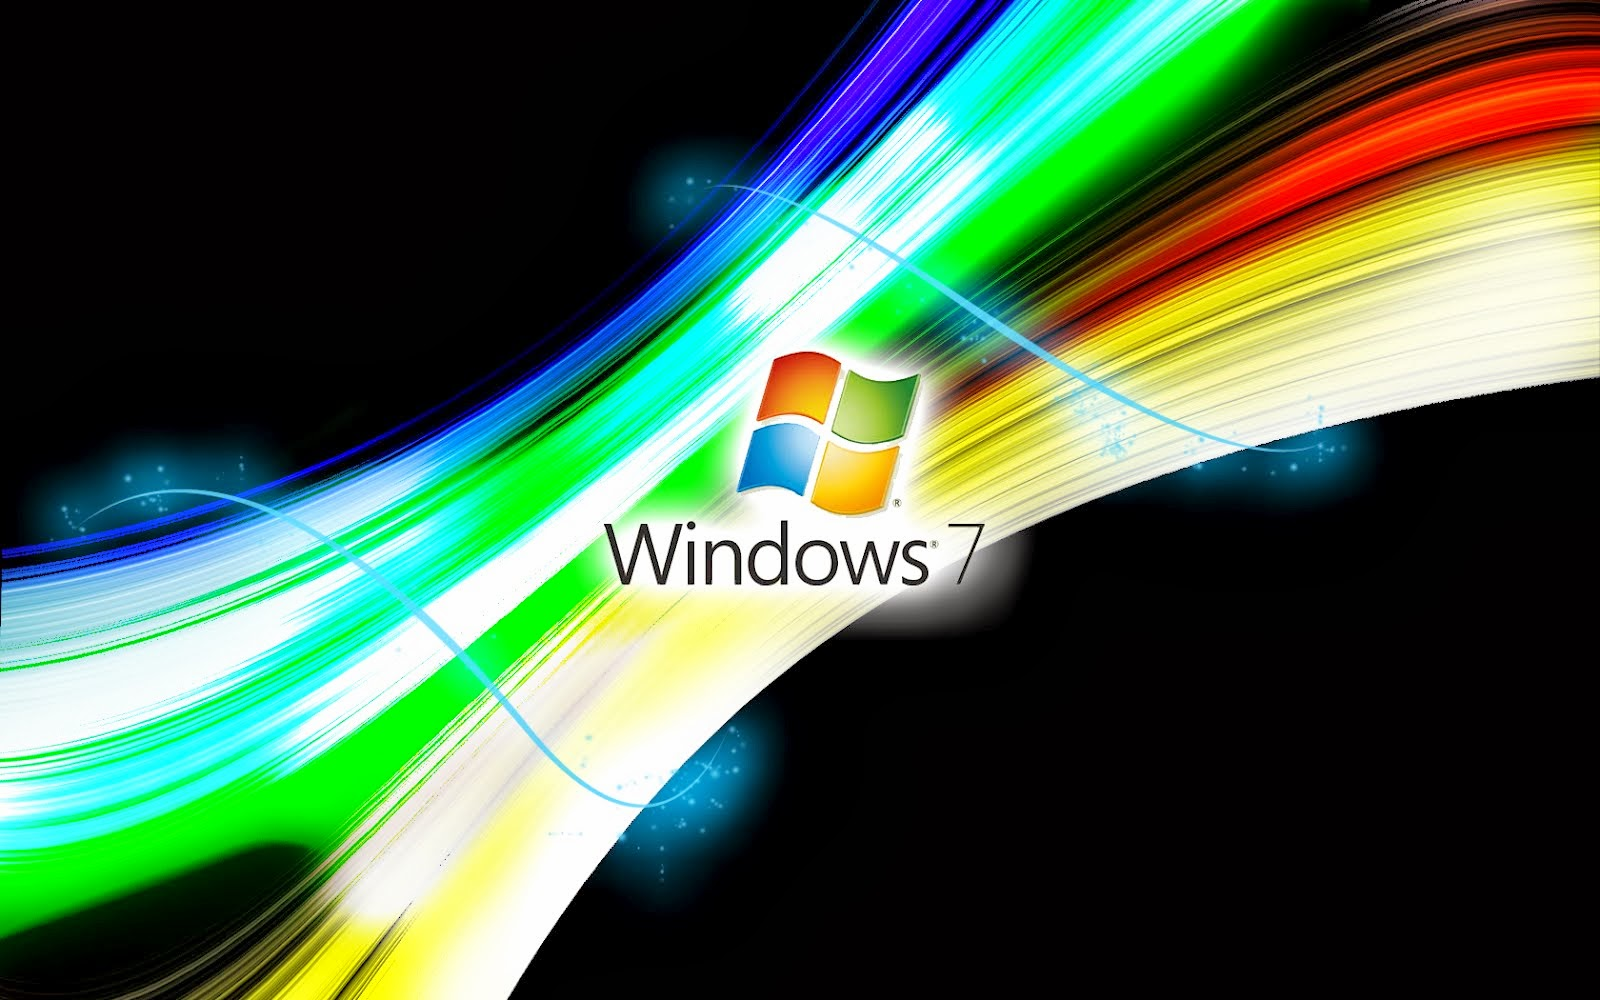 Animated Wallpaper For Windows 7 Wallpaper Animated 1600x1000